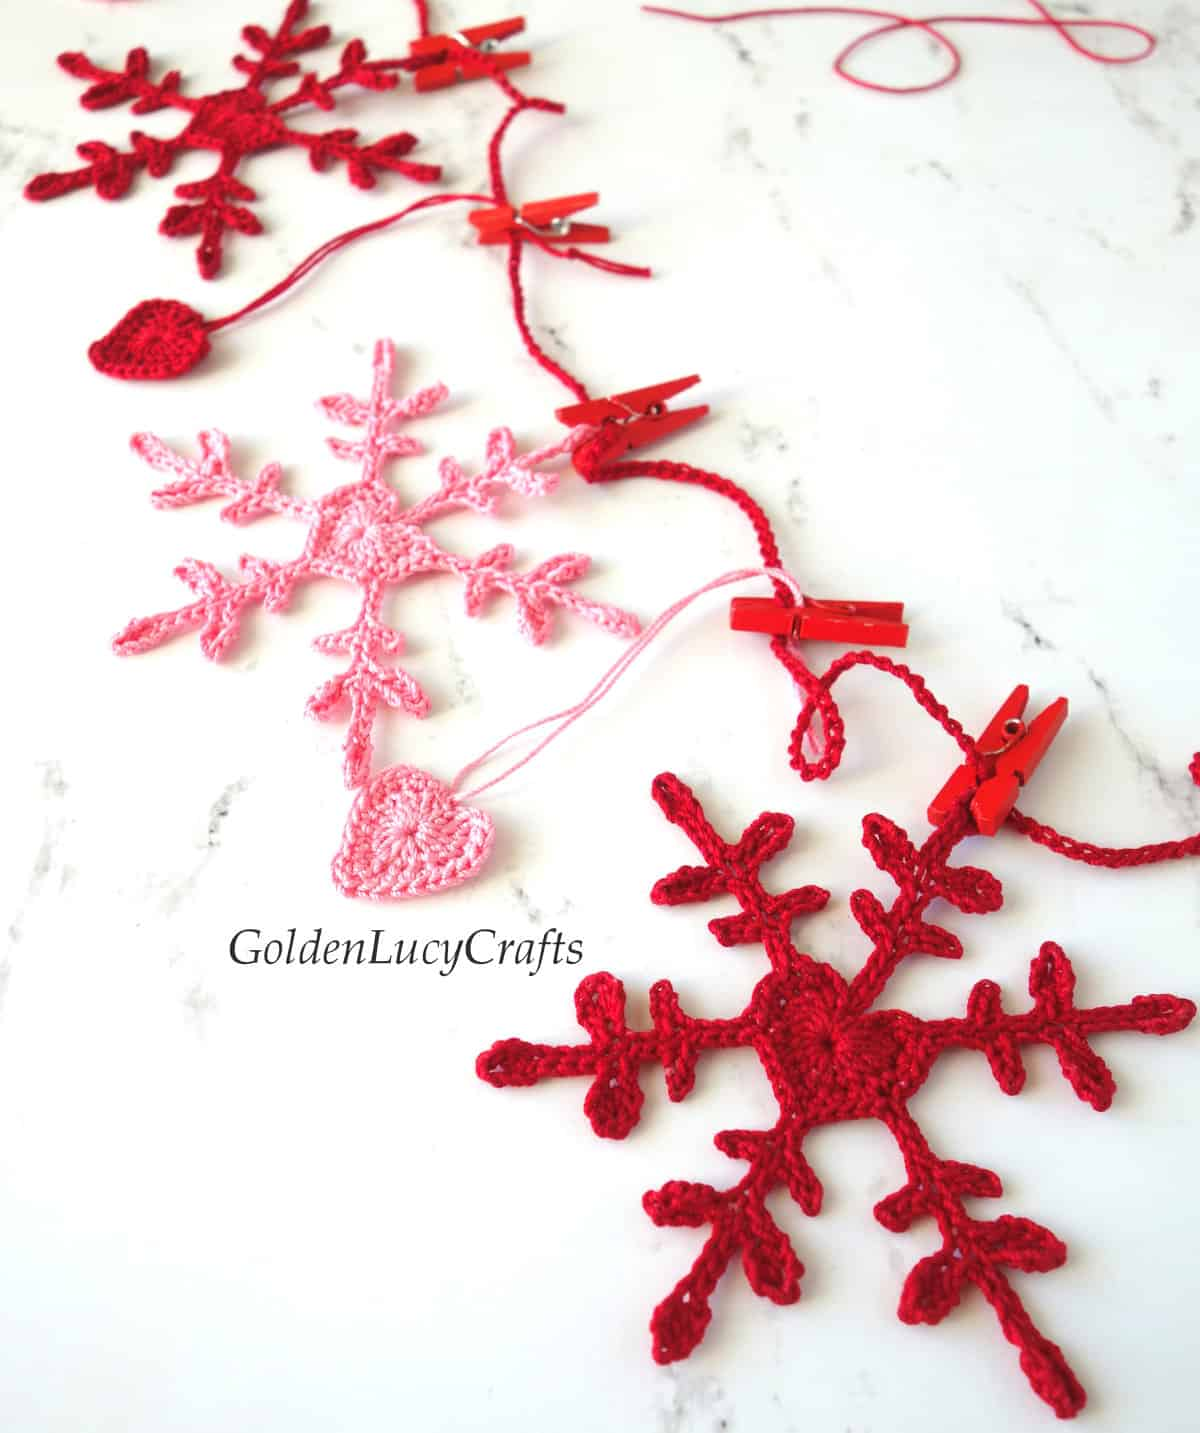 Crochet Valentines Day garland made from snowflakes and hearts in red and pink colors, close up image.